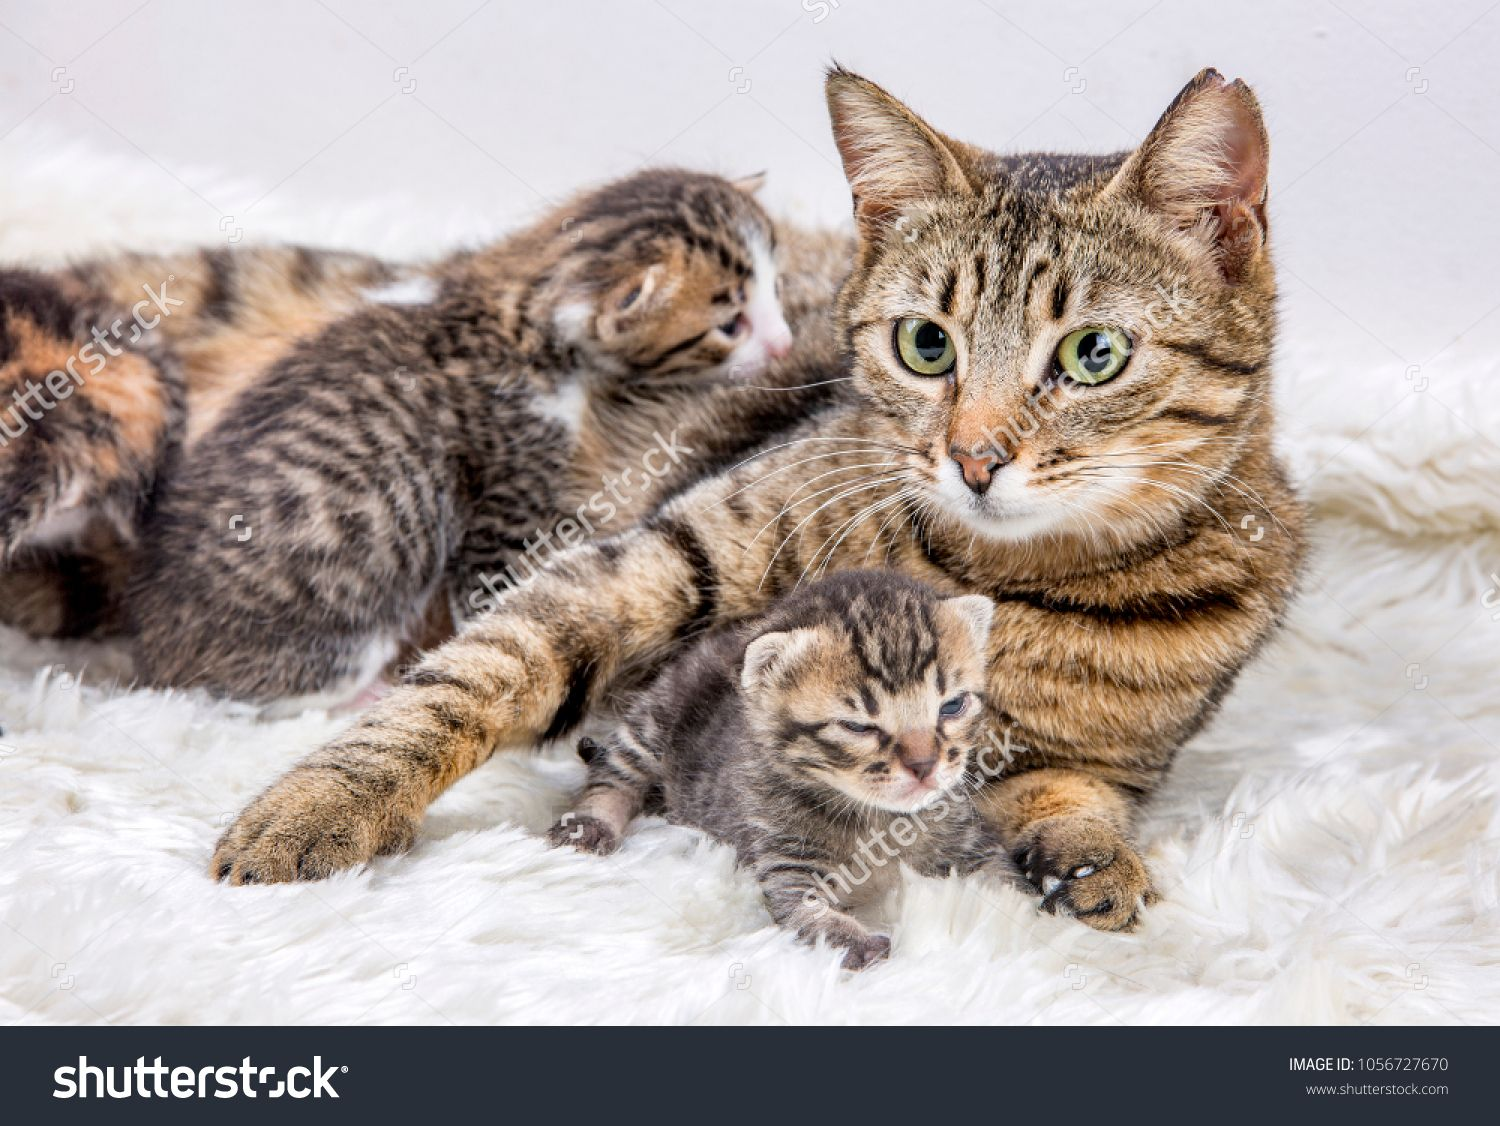 Mom Mother Cat And Baby Cat Kitten Mother Mom Cat Kitten Kittens Cutest Baby Baby Cats Baby Kittens